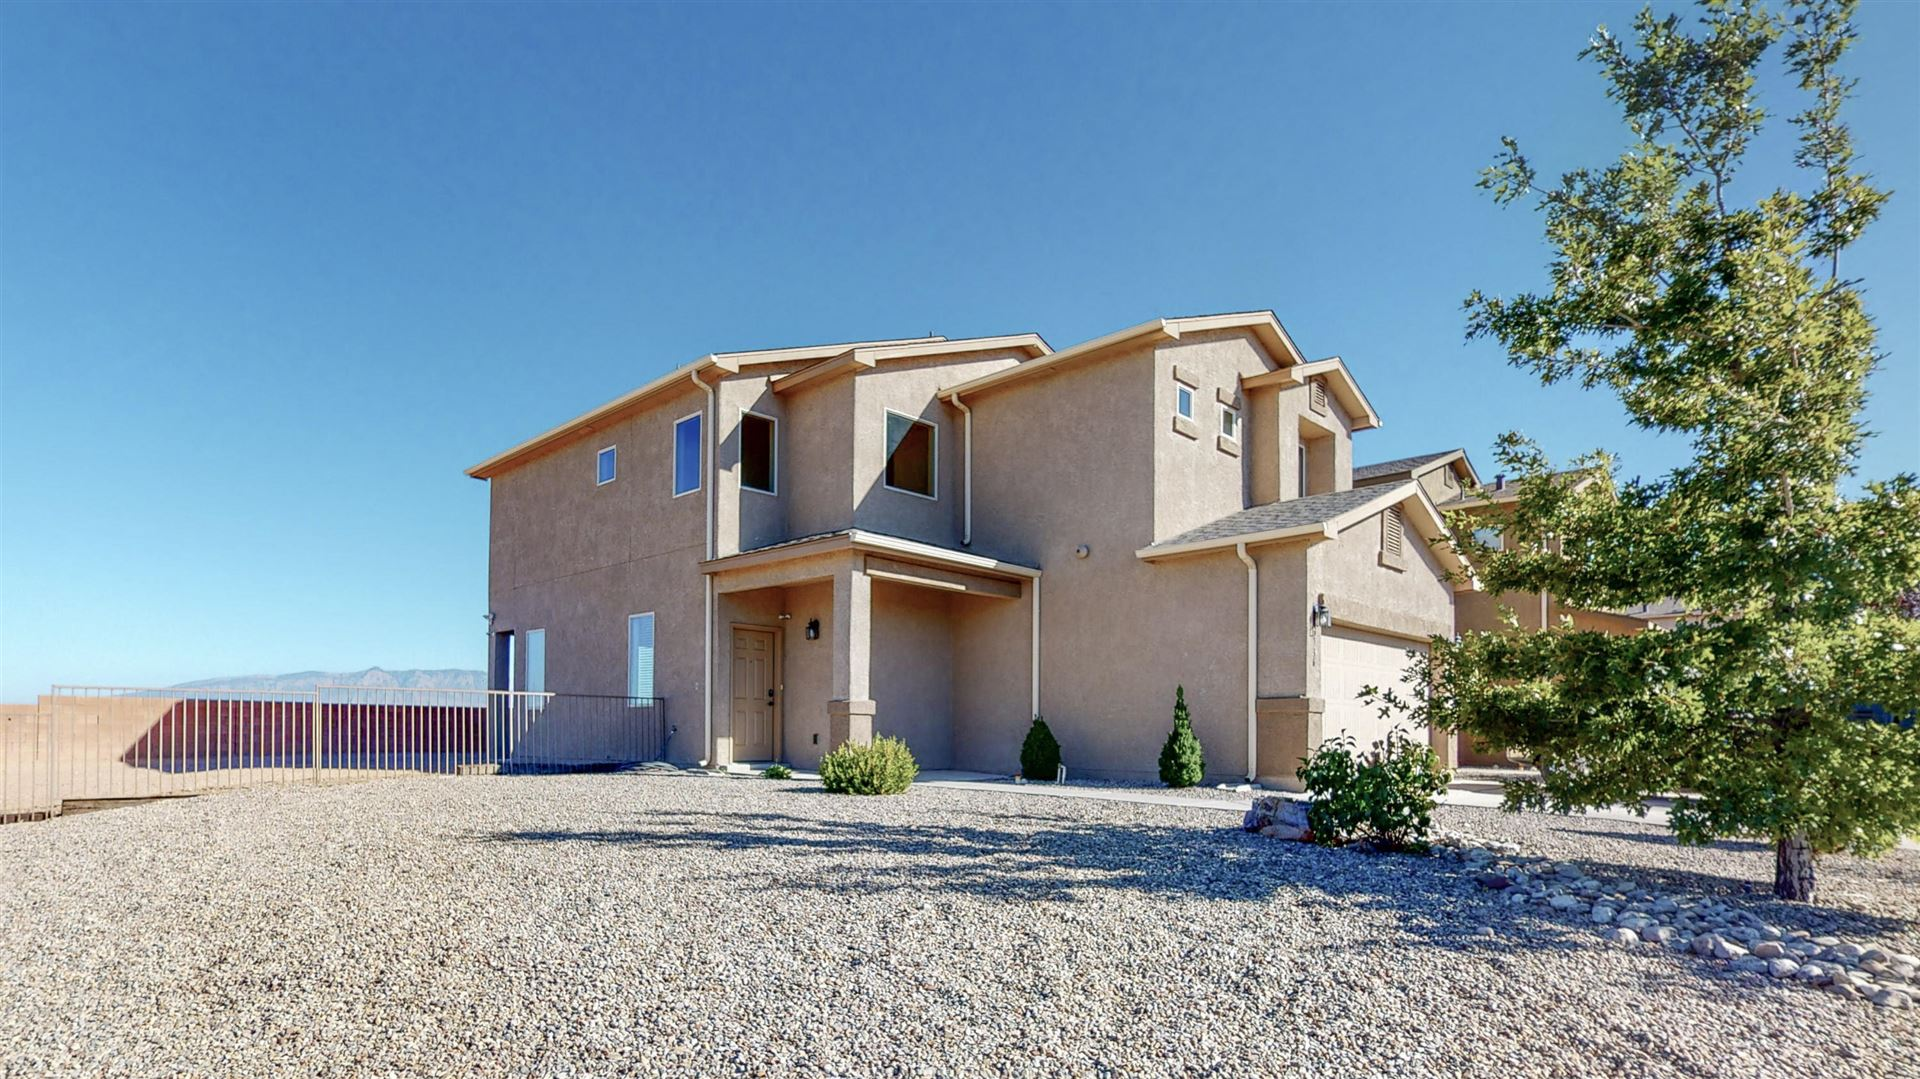 Photo of 2736 CRESCENT MOON Drive NE, Rio Rancho, NM 87144 (MLS # 978088)